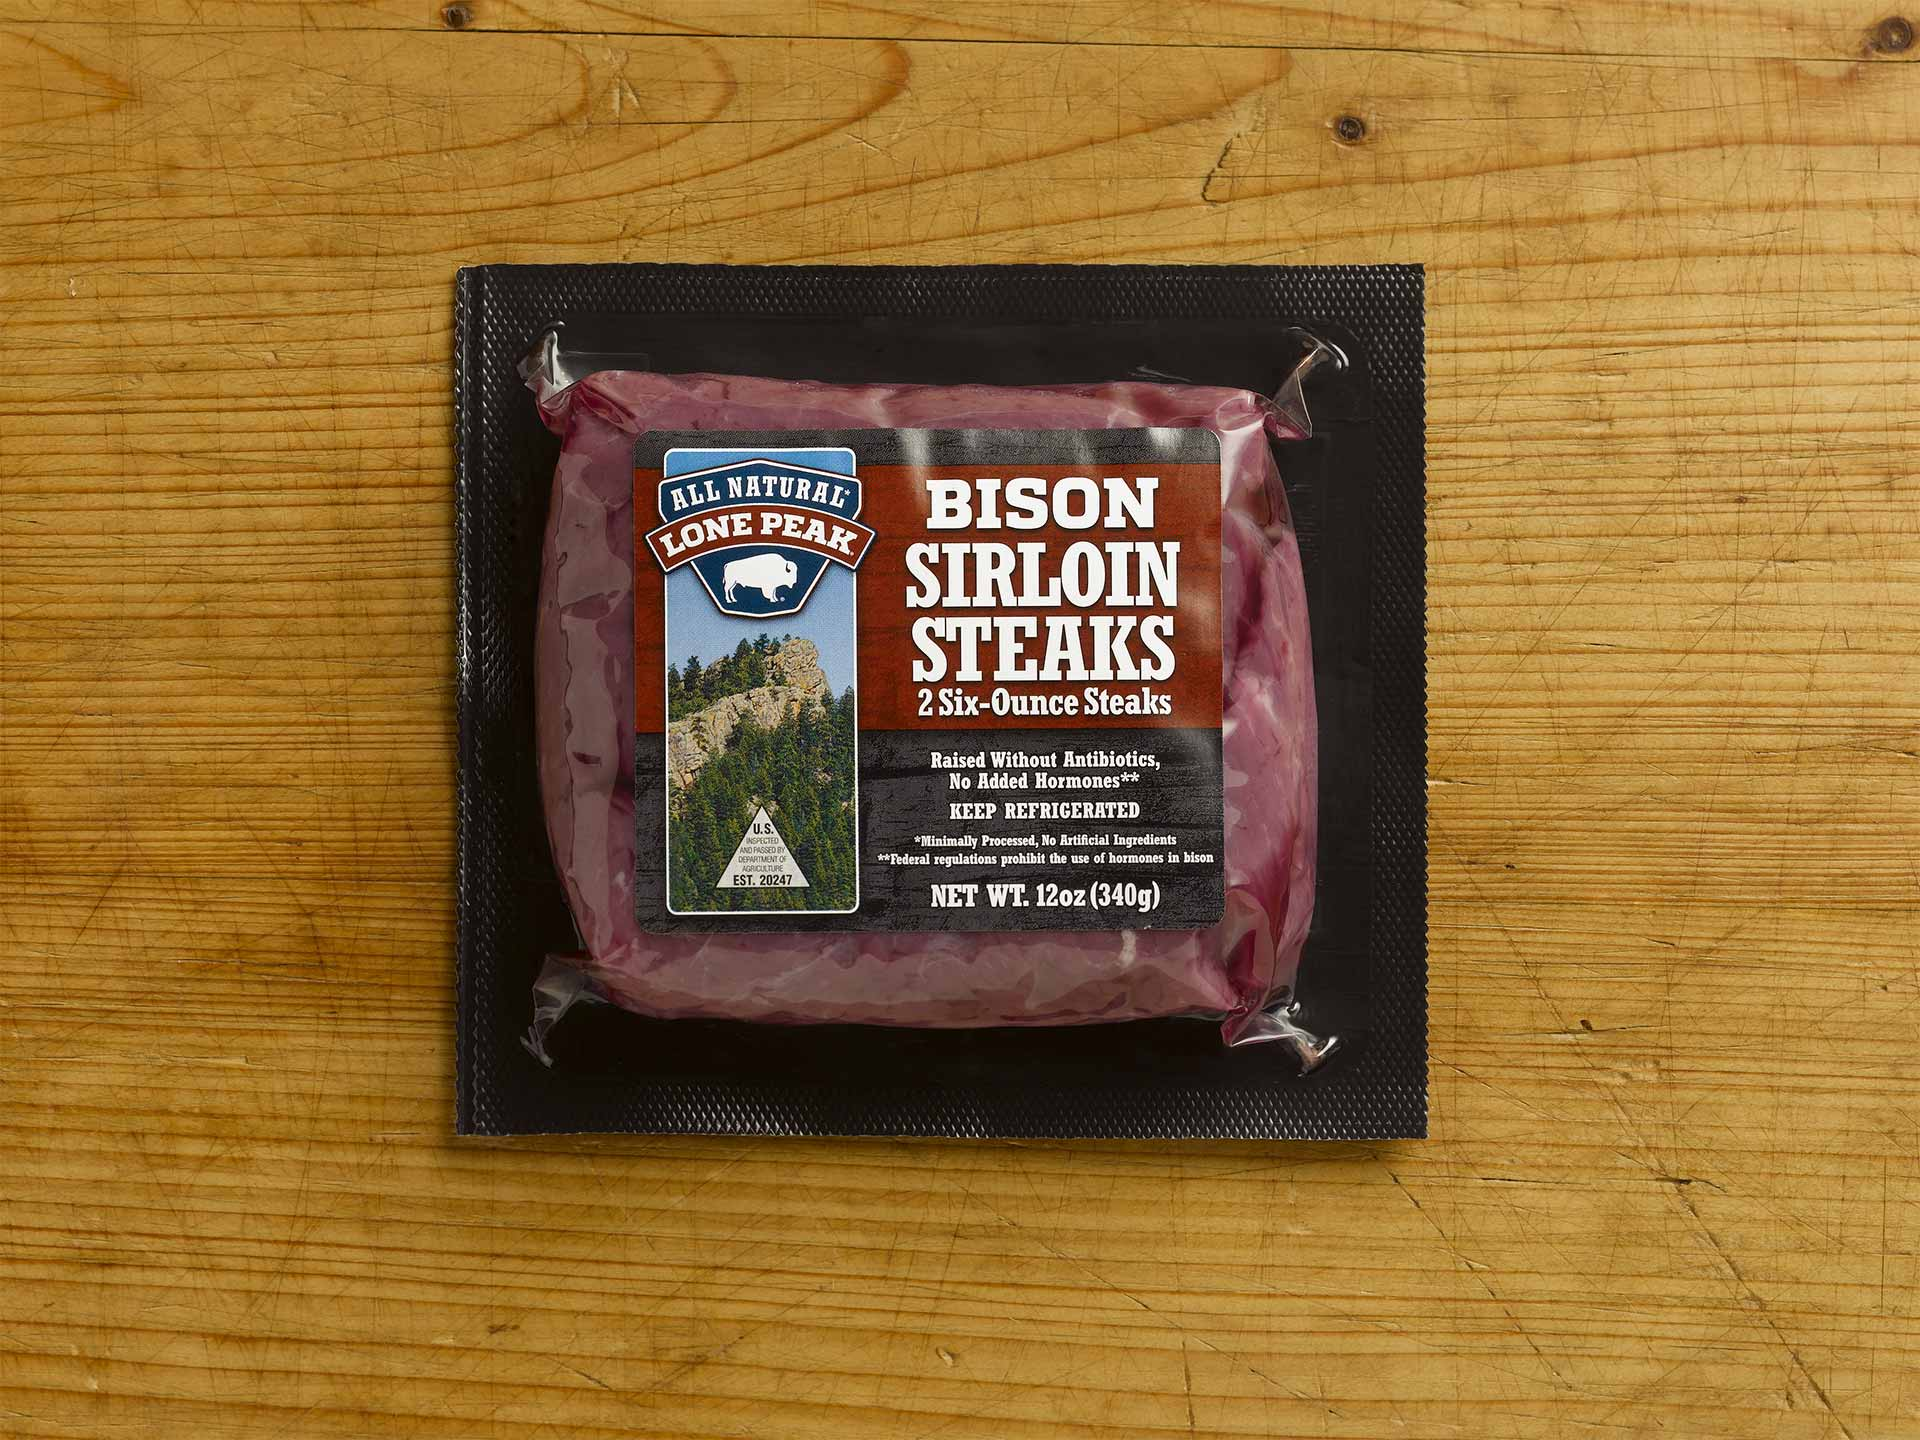 Bison Sirloin Steaks